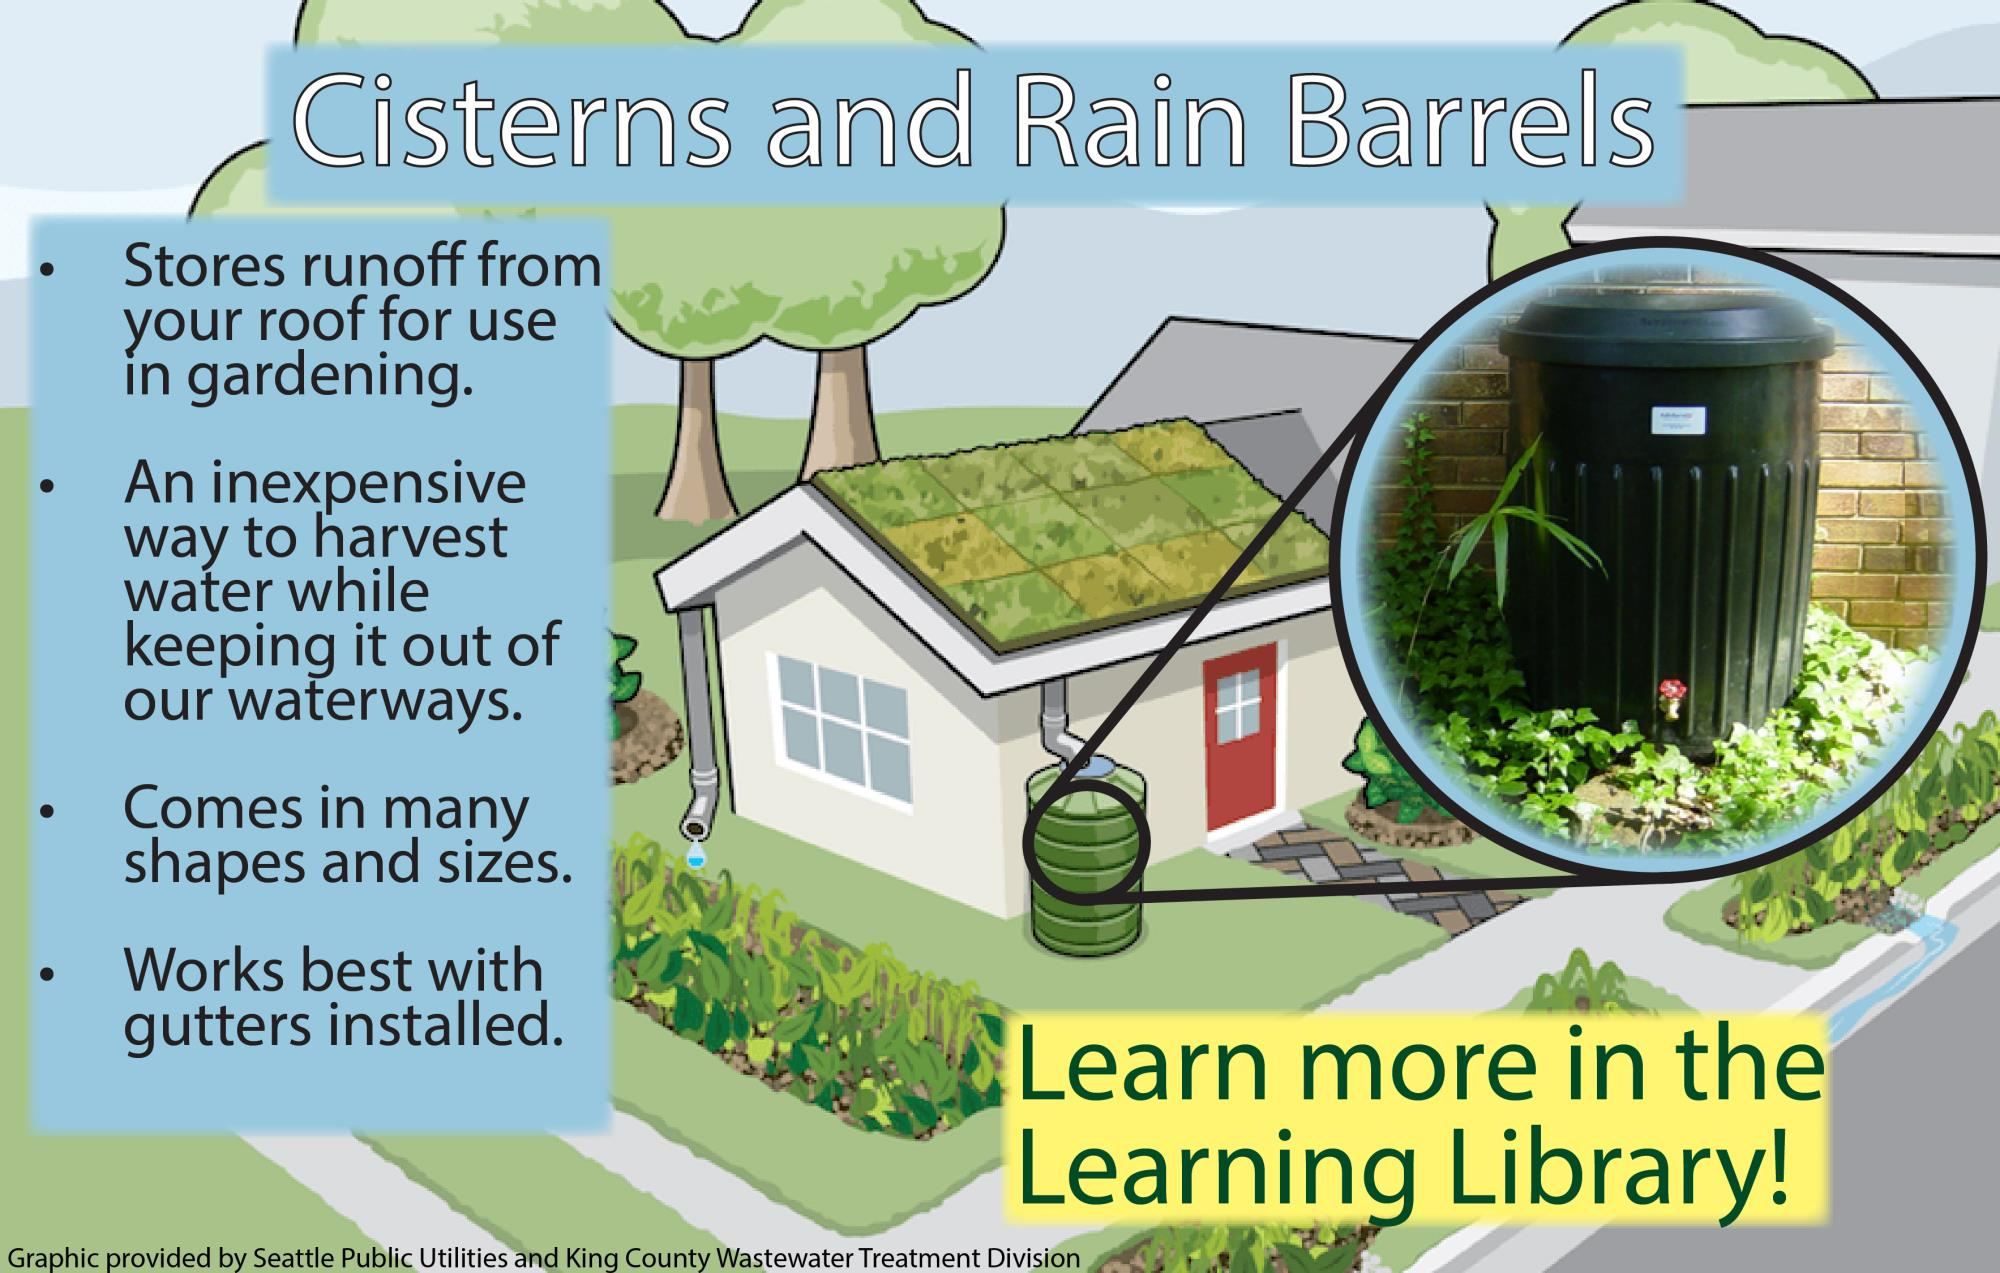 Cisterns and Rain Barrels Infographic